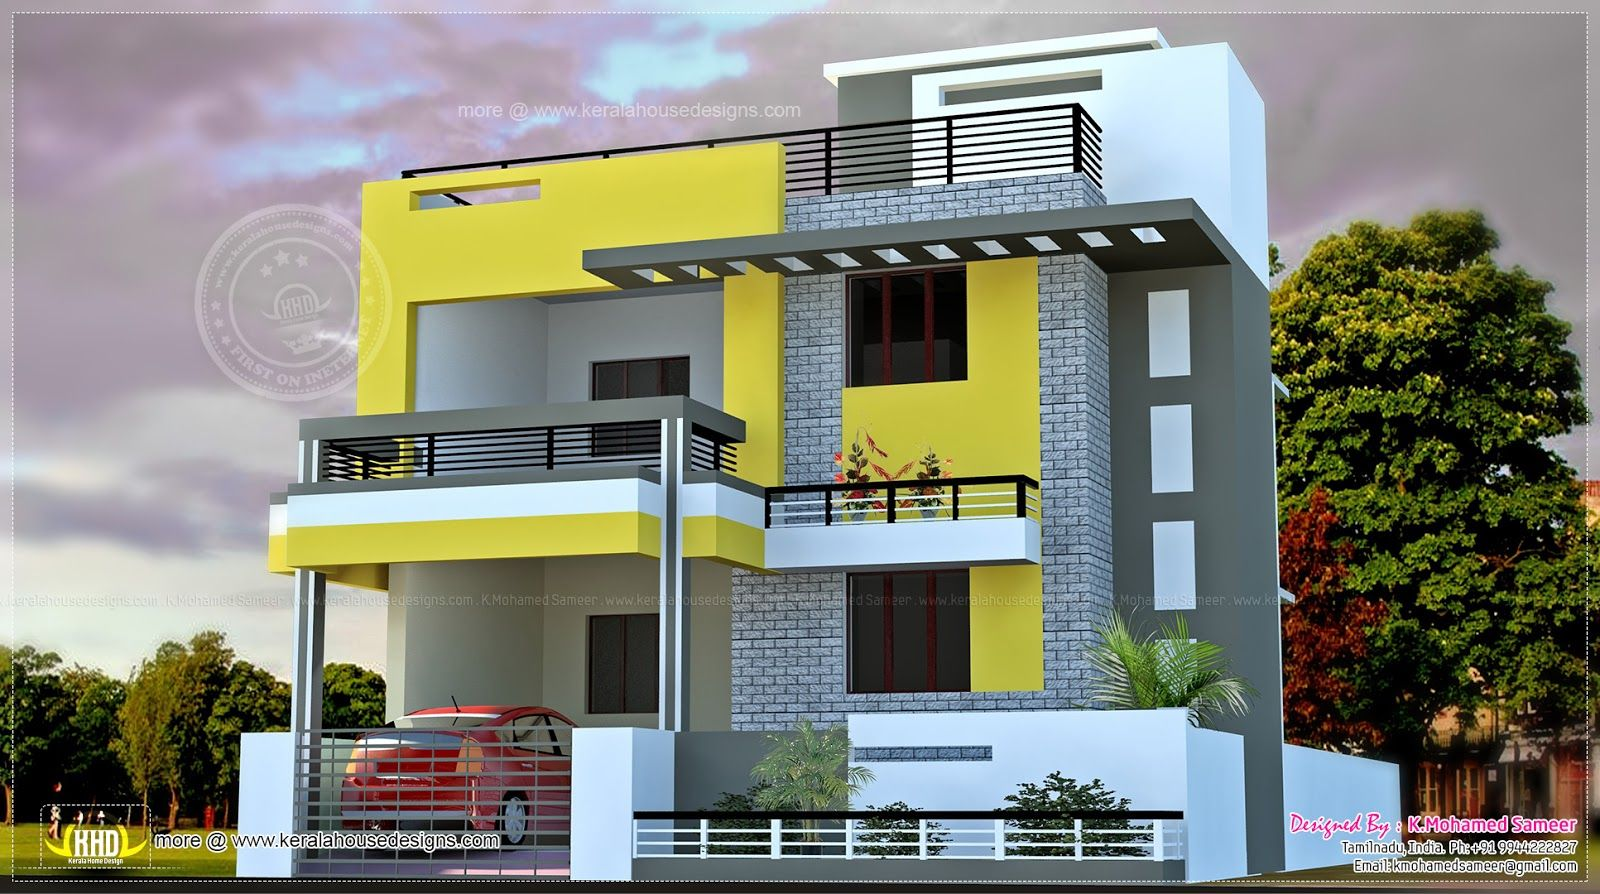 Elevations of residential buildings in indian photo for House building plans in india